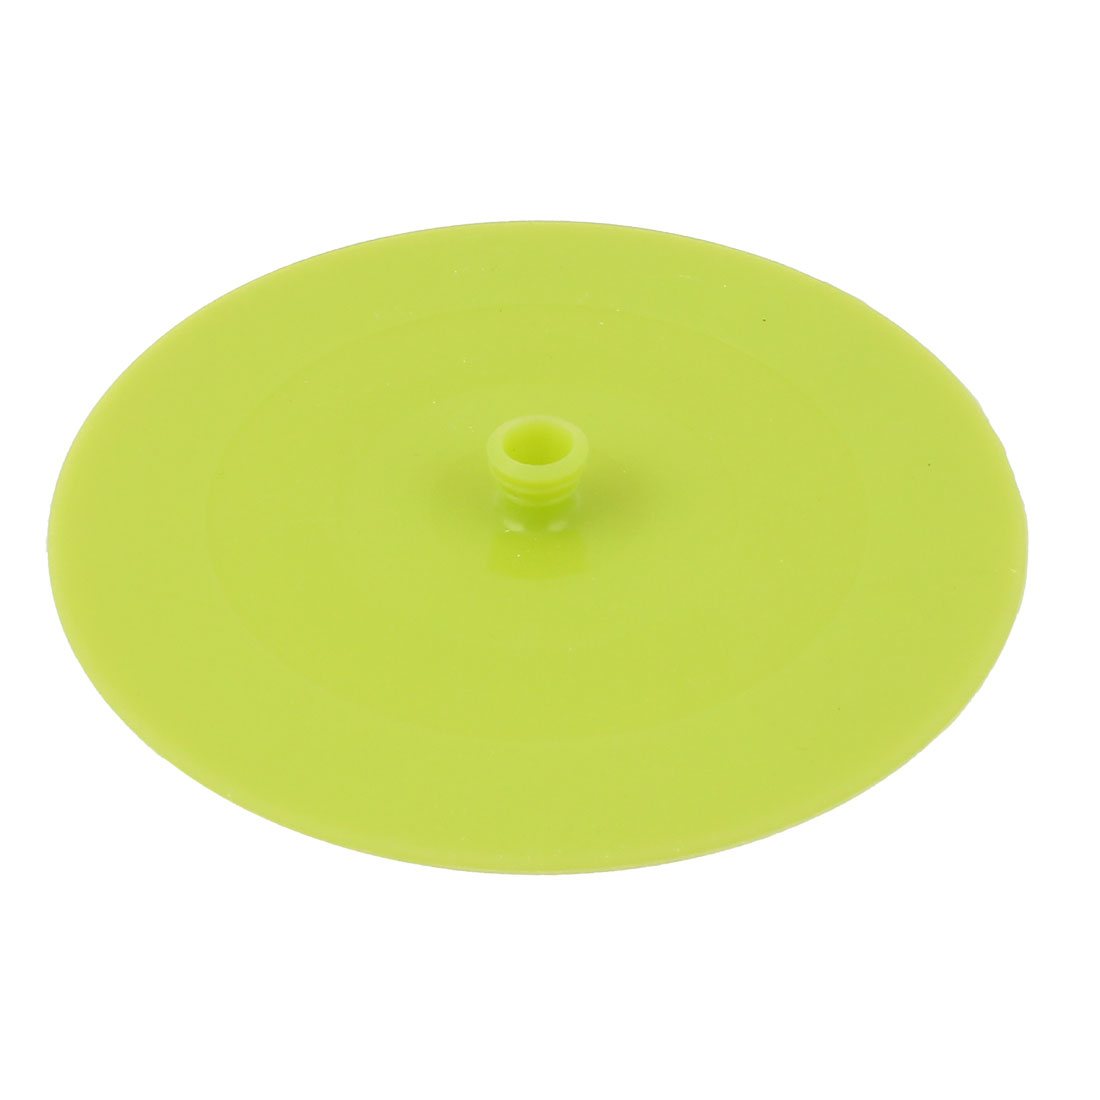 13.5cm Dia Silicone Cooking Food Storage Bowl Cover Wrap Suction Lid Green